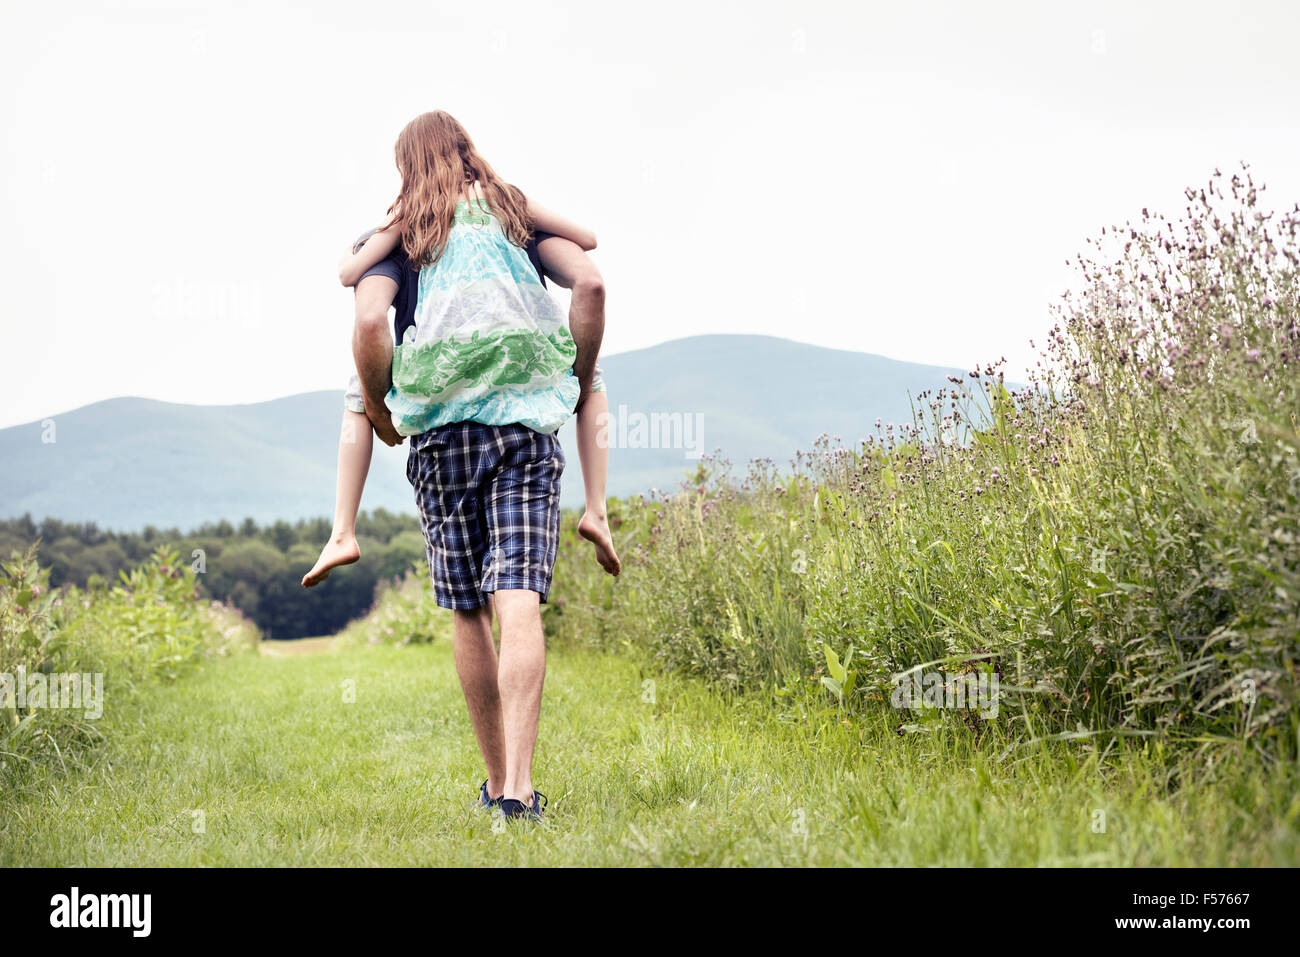 A man giving a young child a piggyback in a meadow. - Stock Image